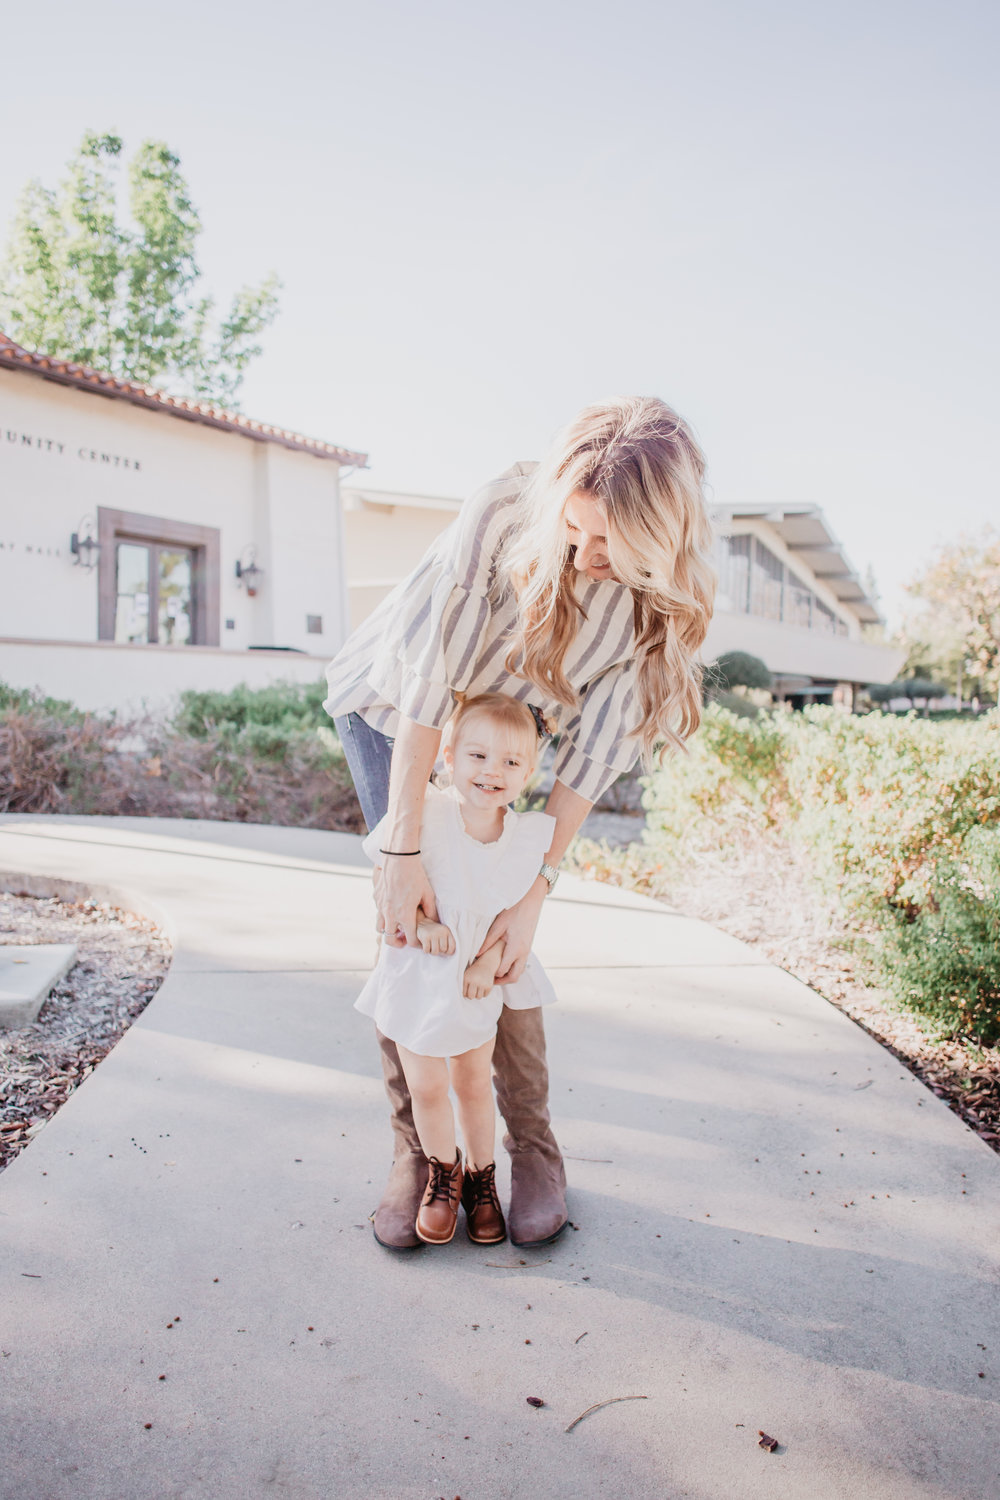 Cute Kids Clothes - Mom Fashion Blogger - White Kids Dress - Knee High Brown Suede Boots -- Mommy Blogger - The Overwhelmed Mommy